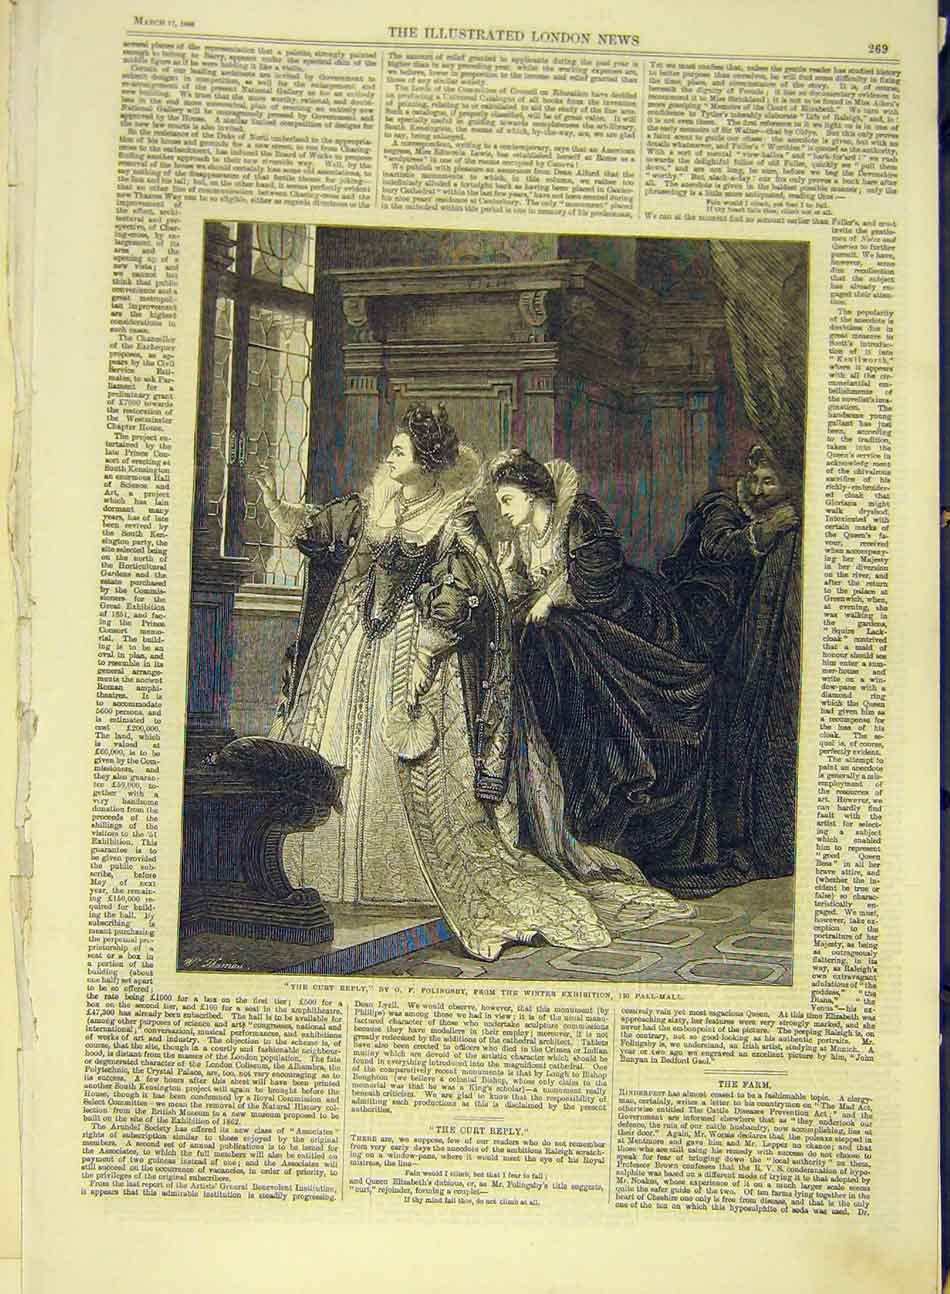 Print 1866 Curt-Reply Folingsby Fine Art Pall-Mall Exhibition 537991 Old Original